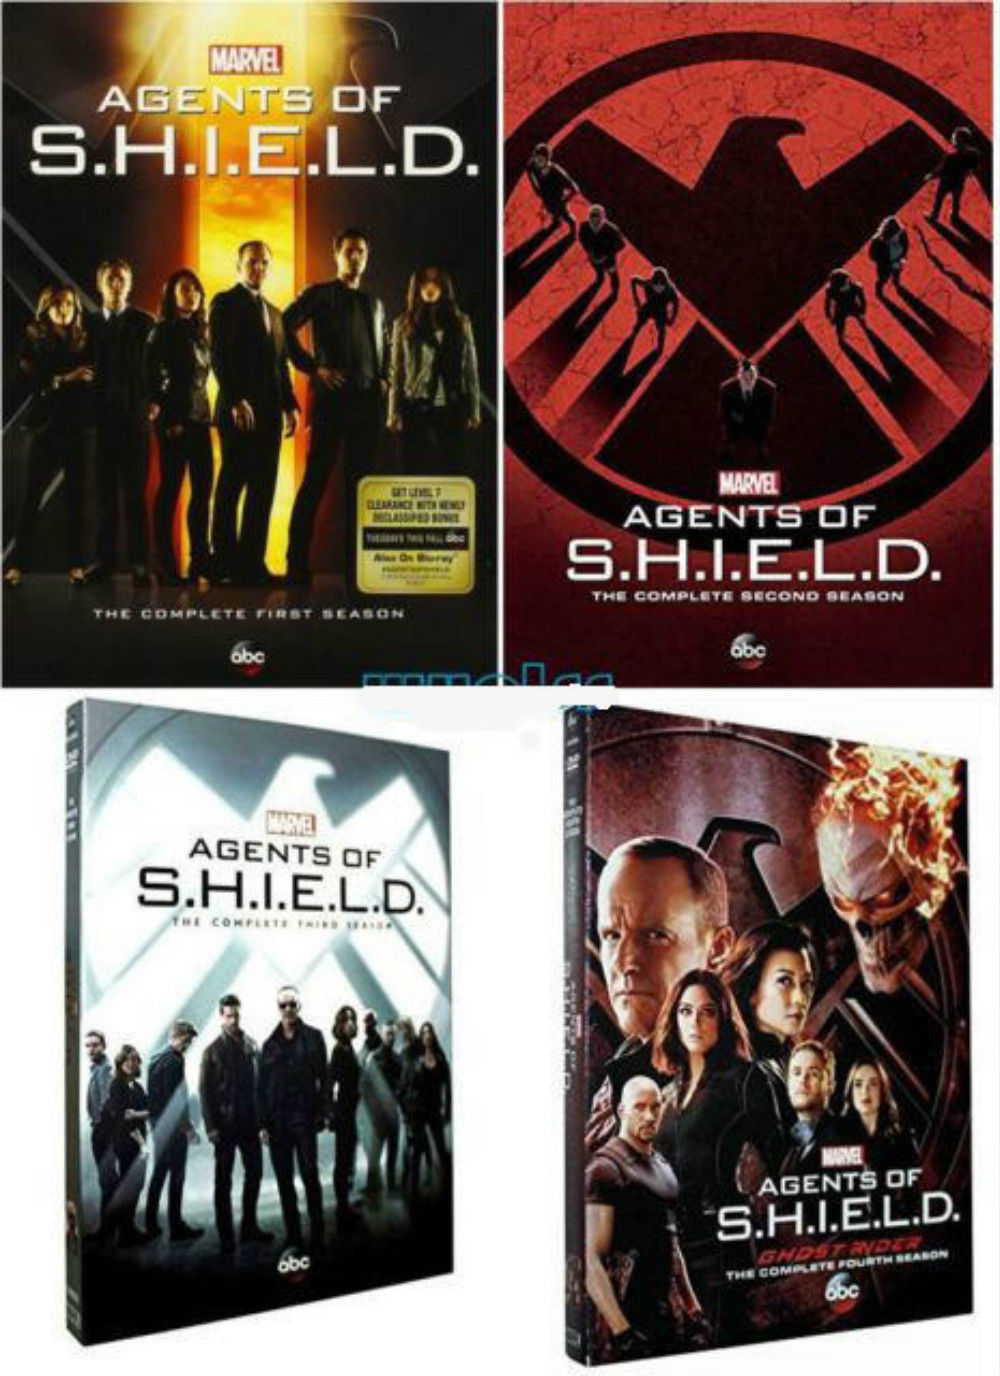 Primary image for Marvel Agents of S.H.I.E.L.D  Complete TV Series Seasons 1 2 3 4 DVD Sets [New]